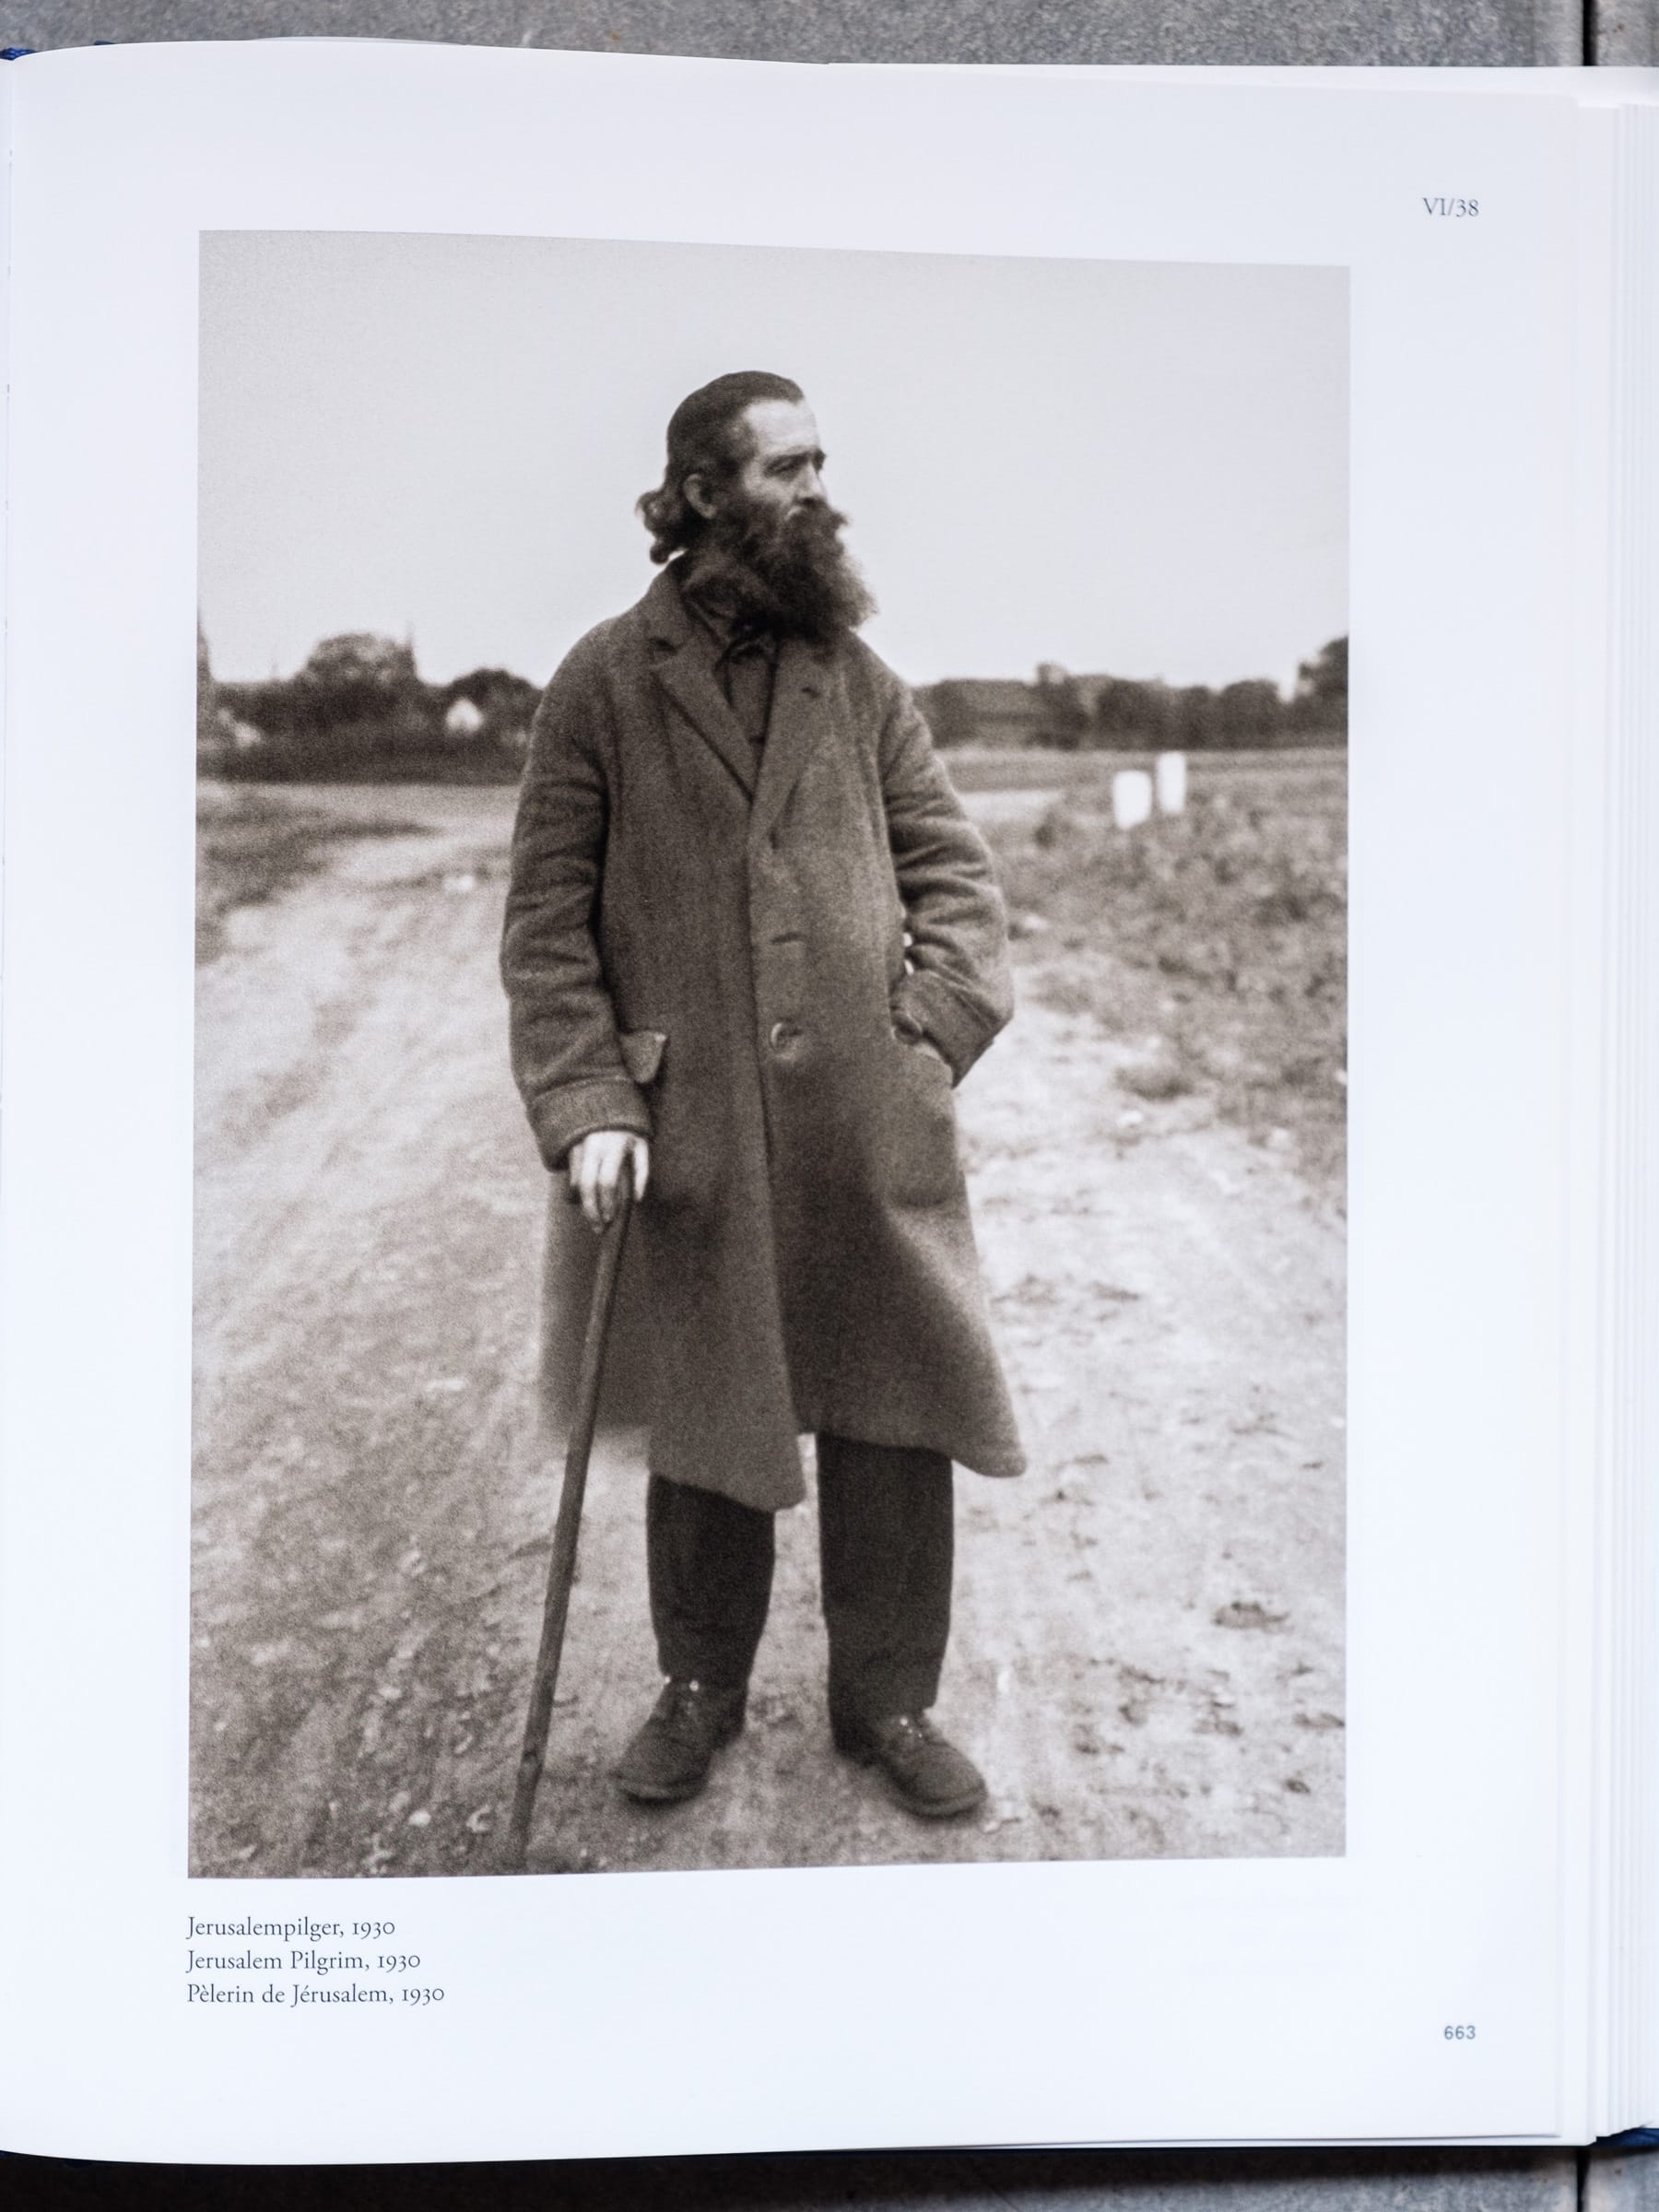 borasification blog mode homme workwear - August Sander People of the 20th Century 2